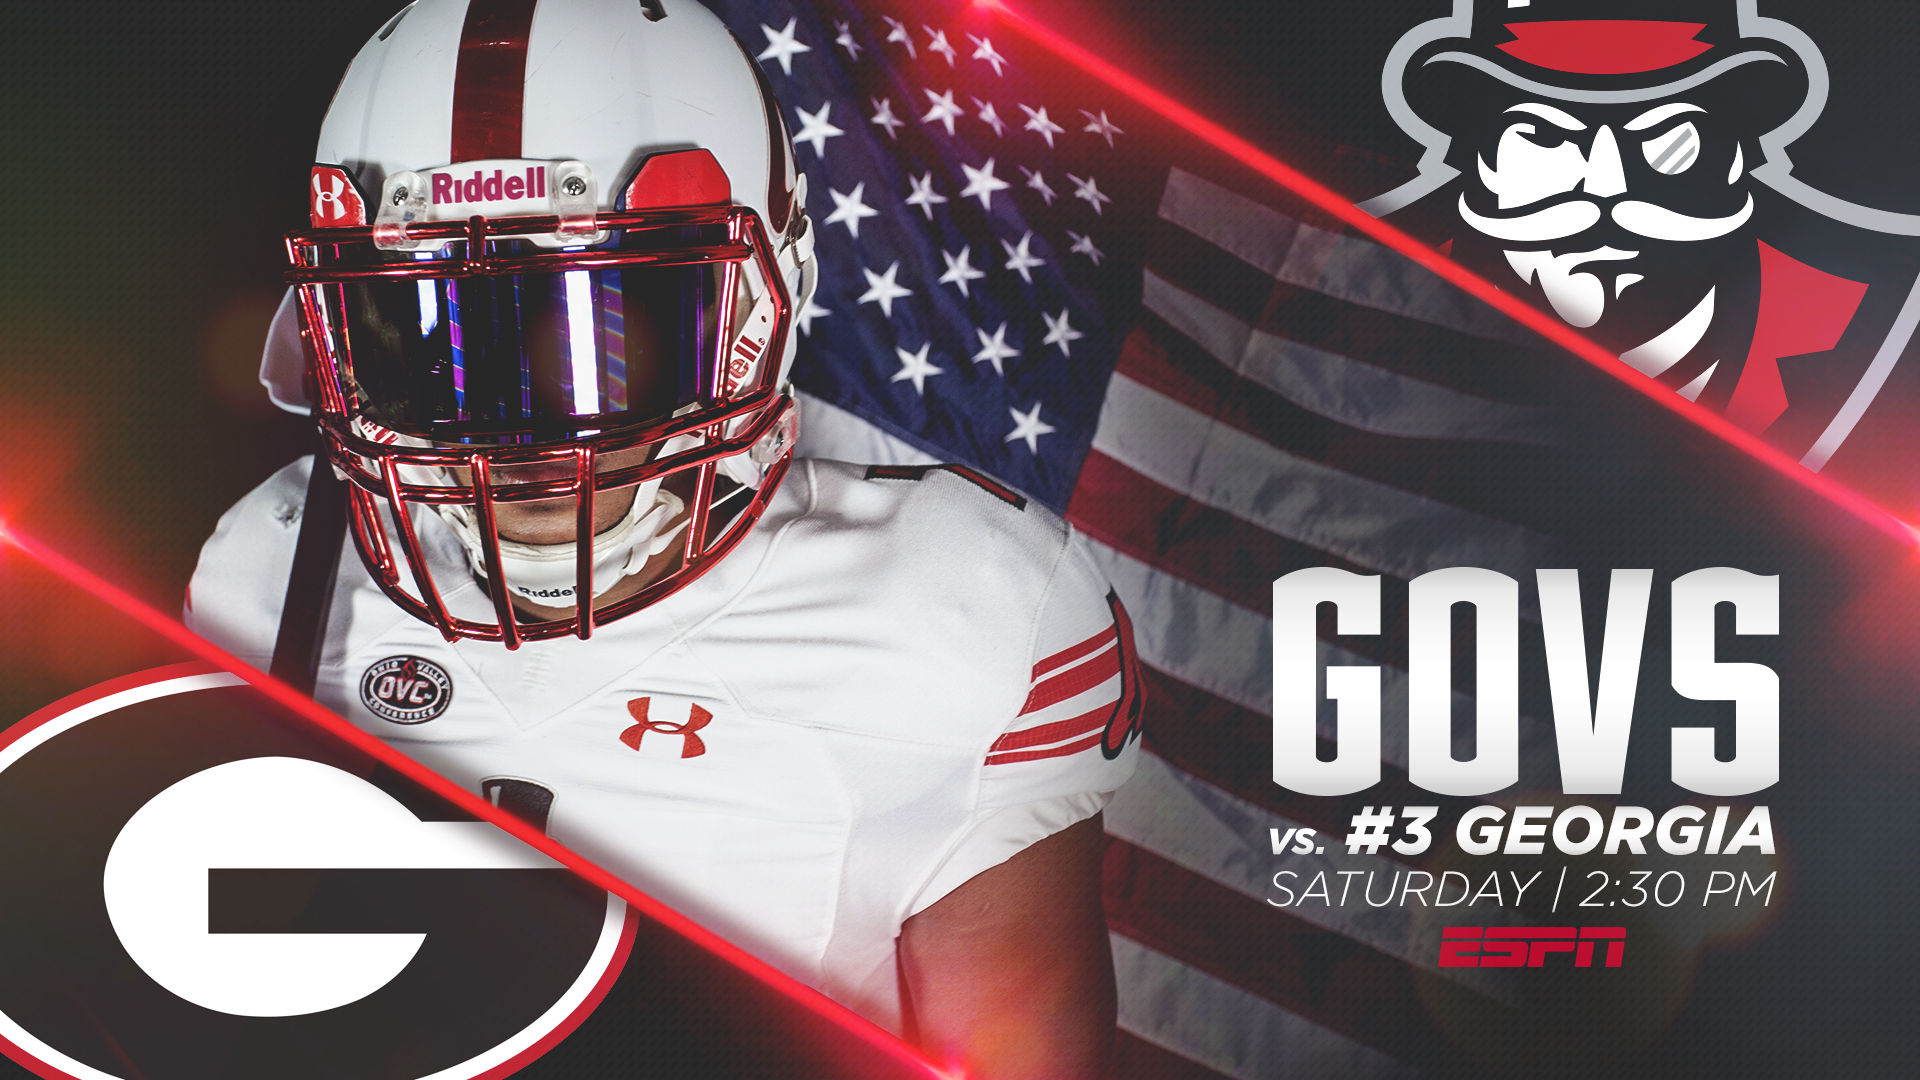 Governors kick off 2018 campaign at Georgia - Austin Peay State ... a1b7afbf0